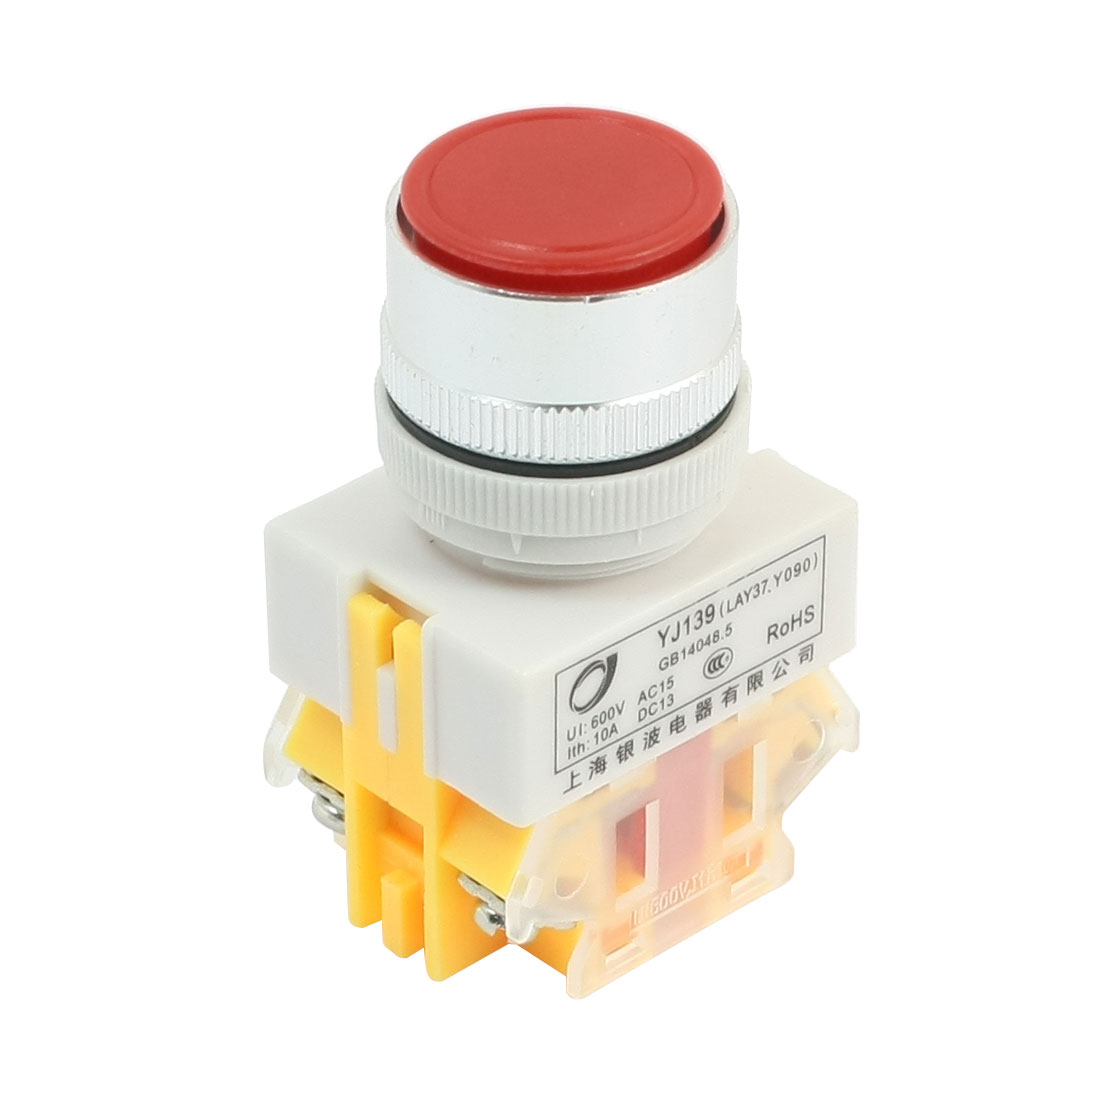 600V 10A NO/NC 4 Terminals 24mm Dia Red Momentary Pushbutton Switch